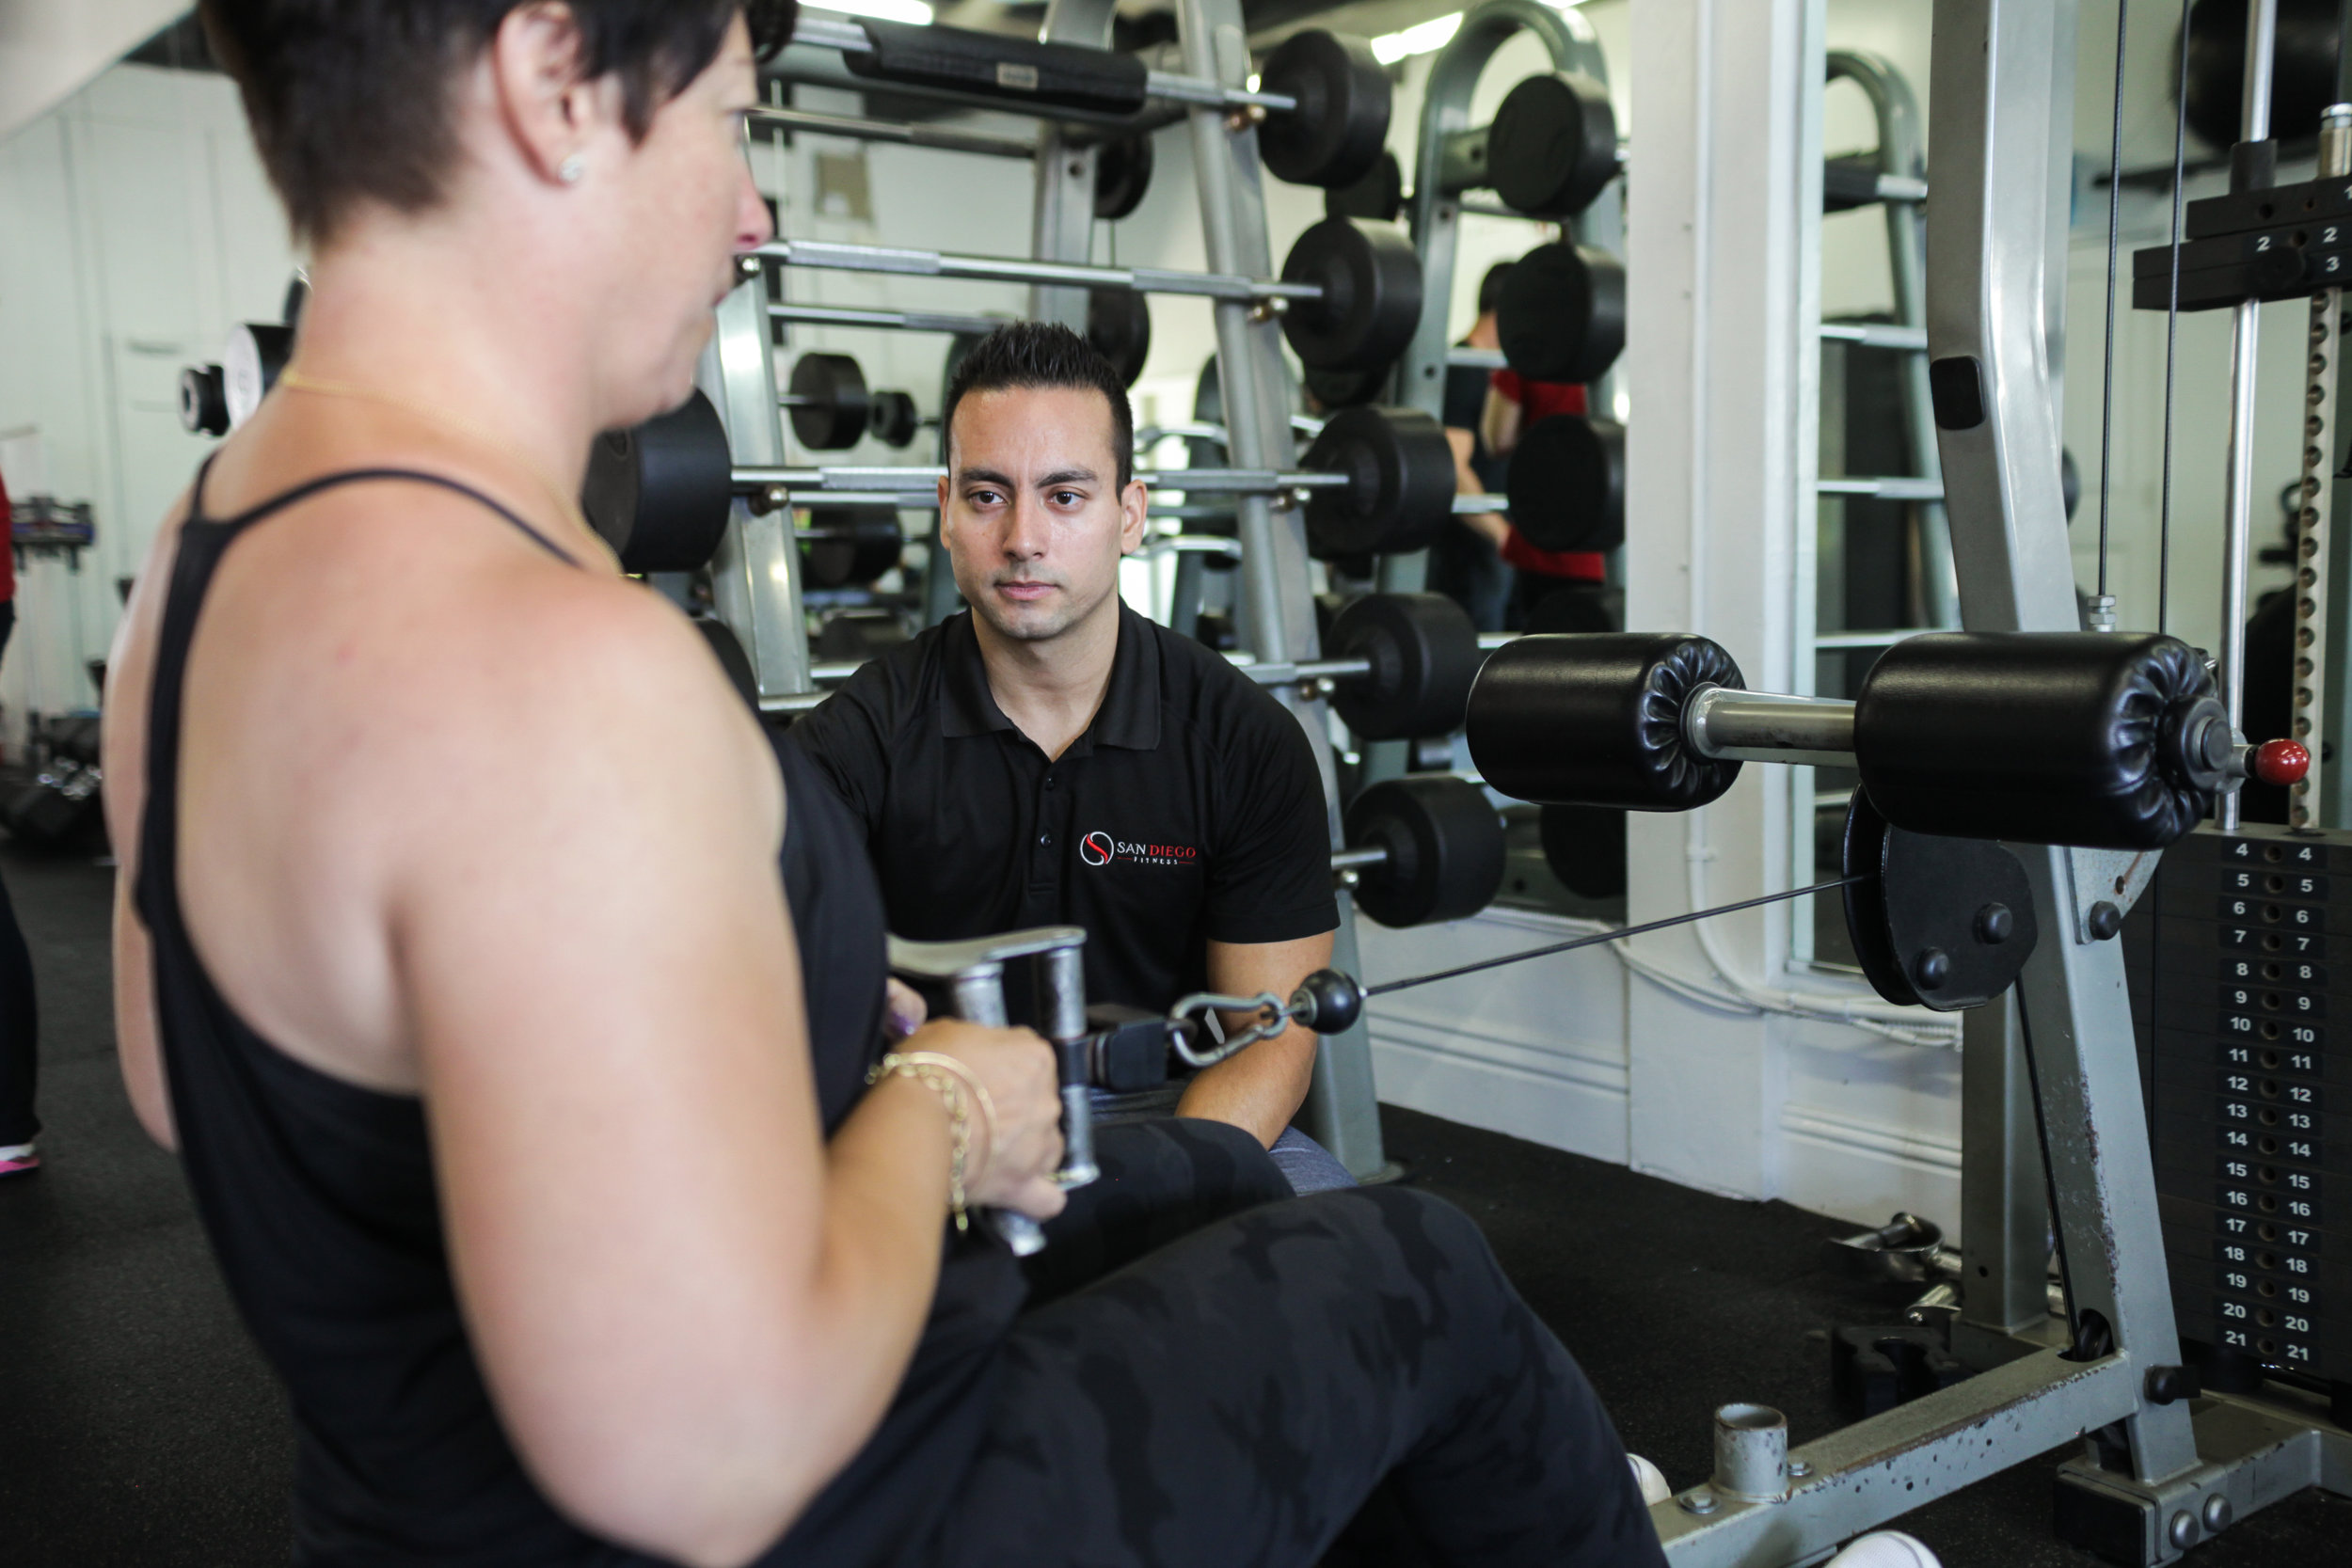 Personal Training - San Diego Fitness' Elite Personal Trainers offer one-on-one Personal Training in both 30-Minute and 60-Minute Sessions. Fully customized programs include nutritional guidance, resistance training protocols, cardiovascular programming, flexibility/stability training, and more. Our personal assistance provides the motivation, knowledge, and accountability you need to reach your individual health and fitness goals.